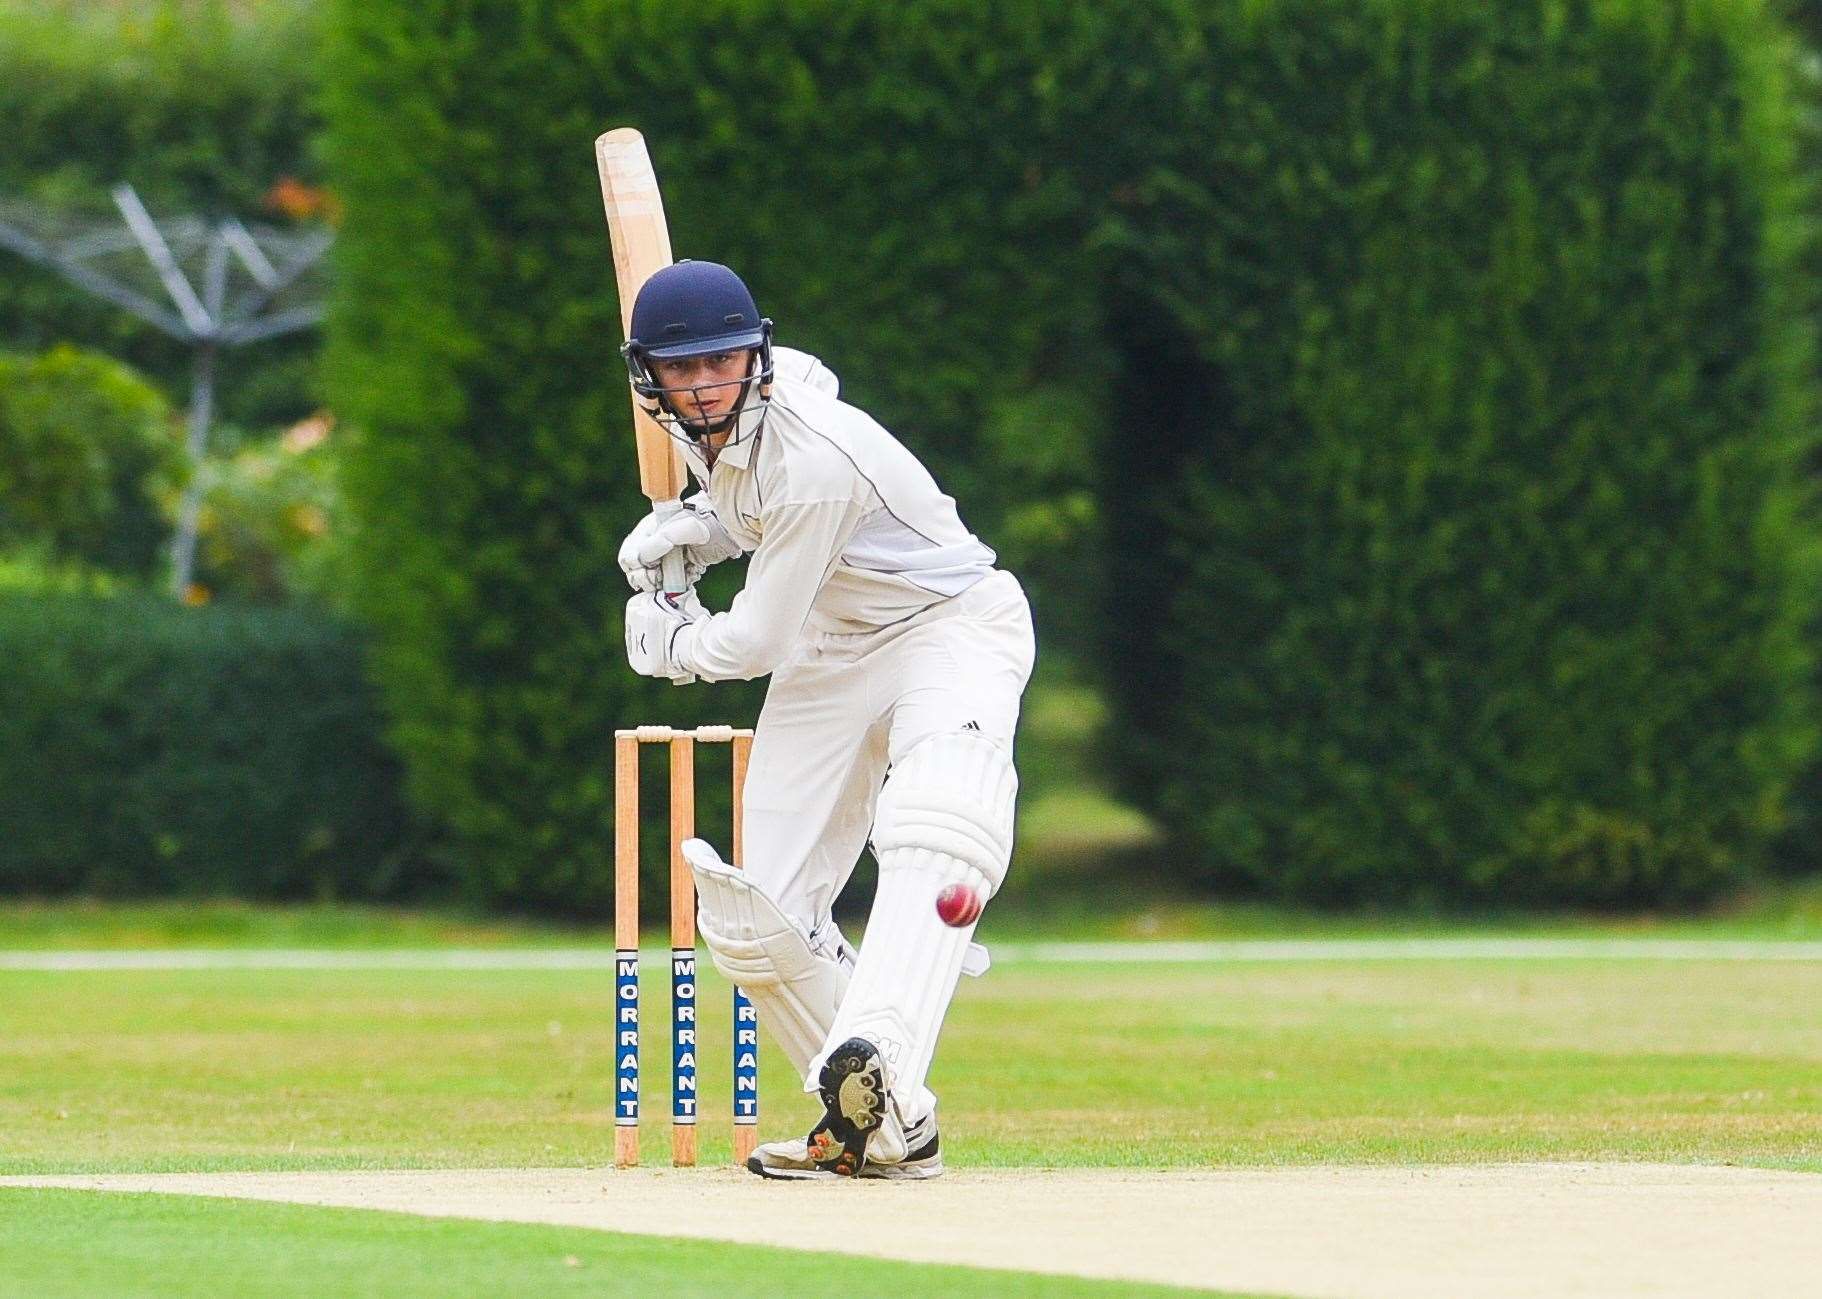 Freddie Fairey at the crease for Downham Stow.. (40632421)